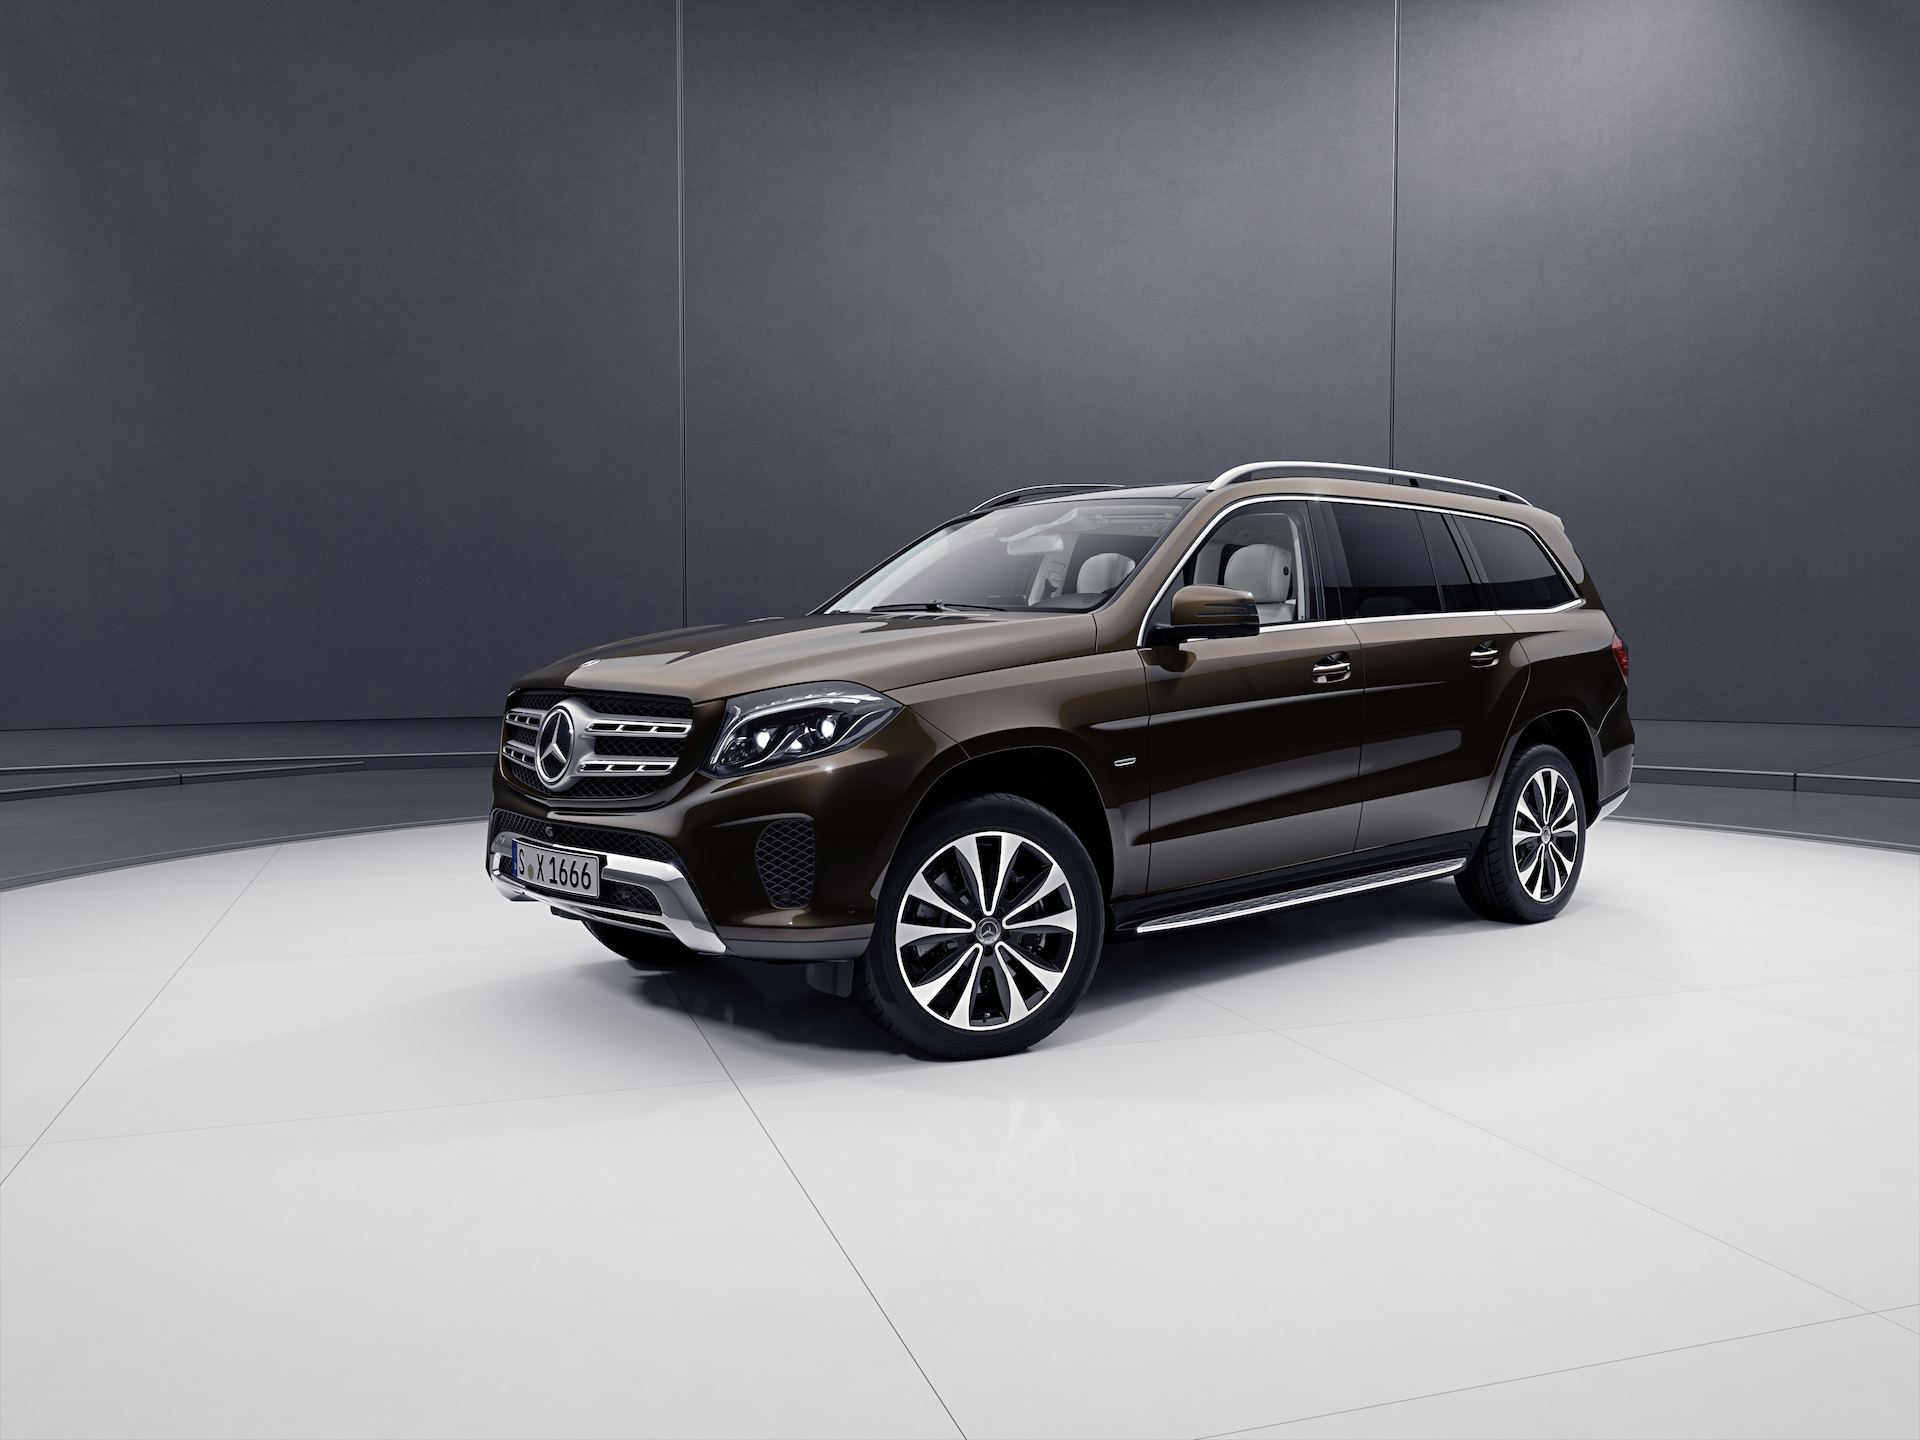 99 The Best 2019 Mercedes Gl Class History